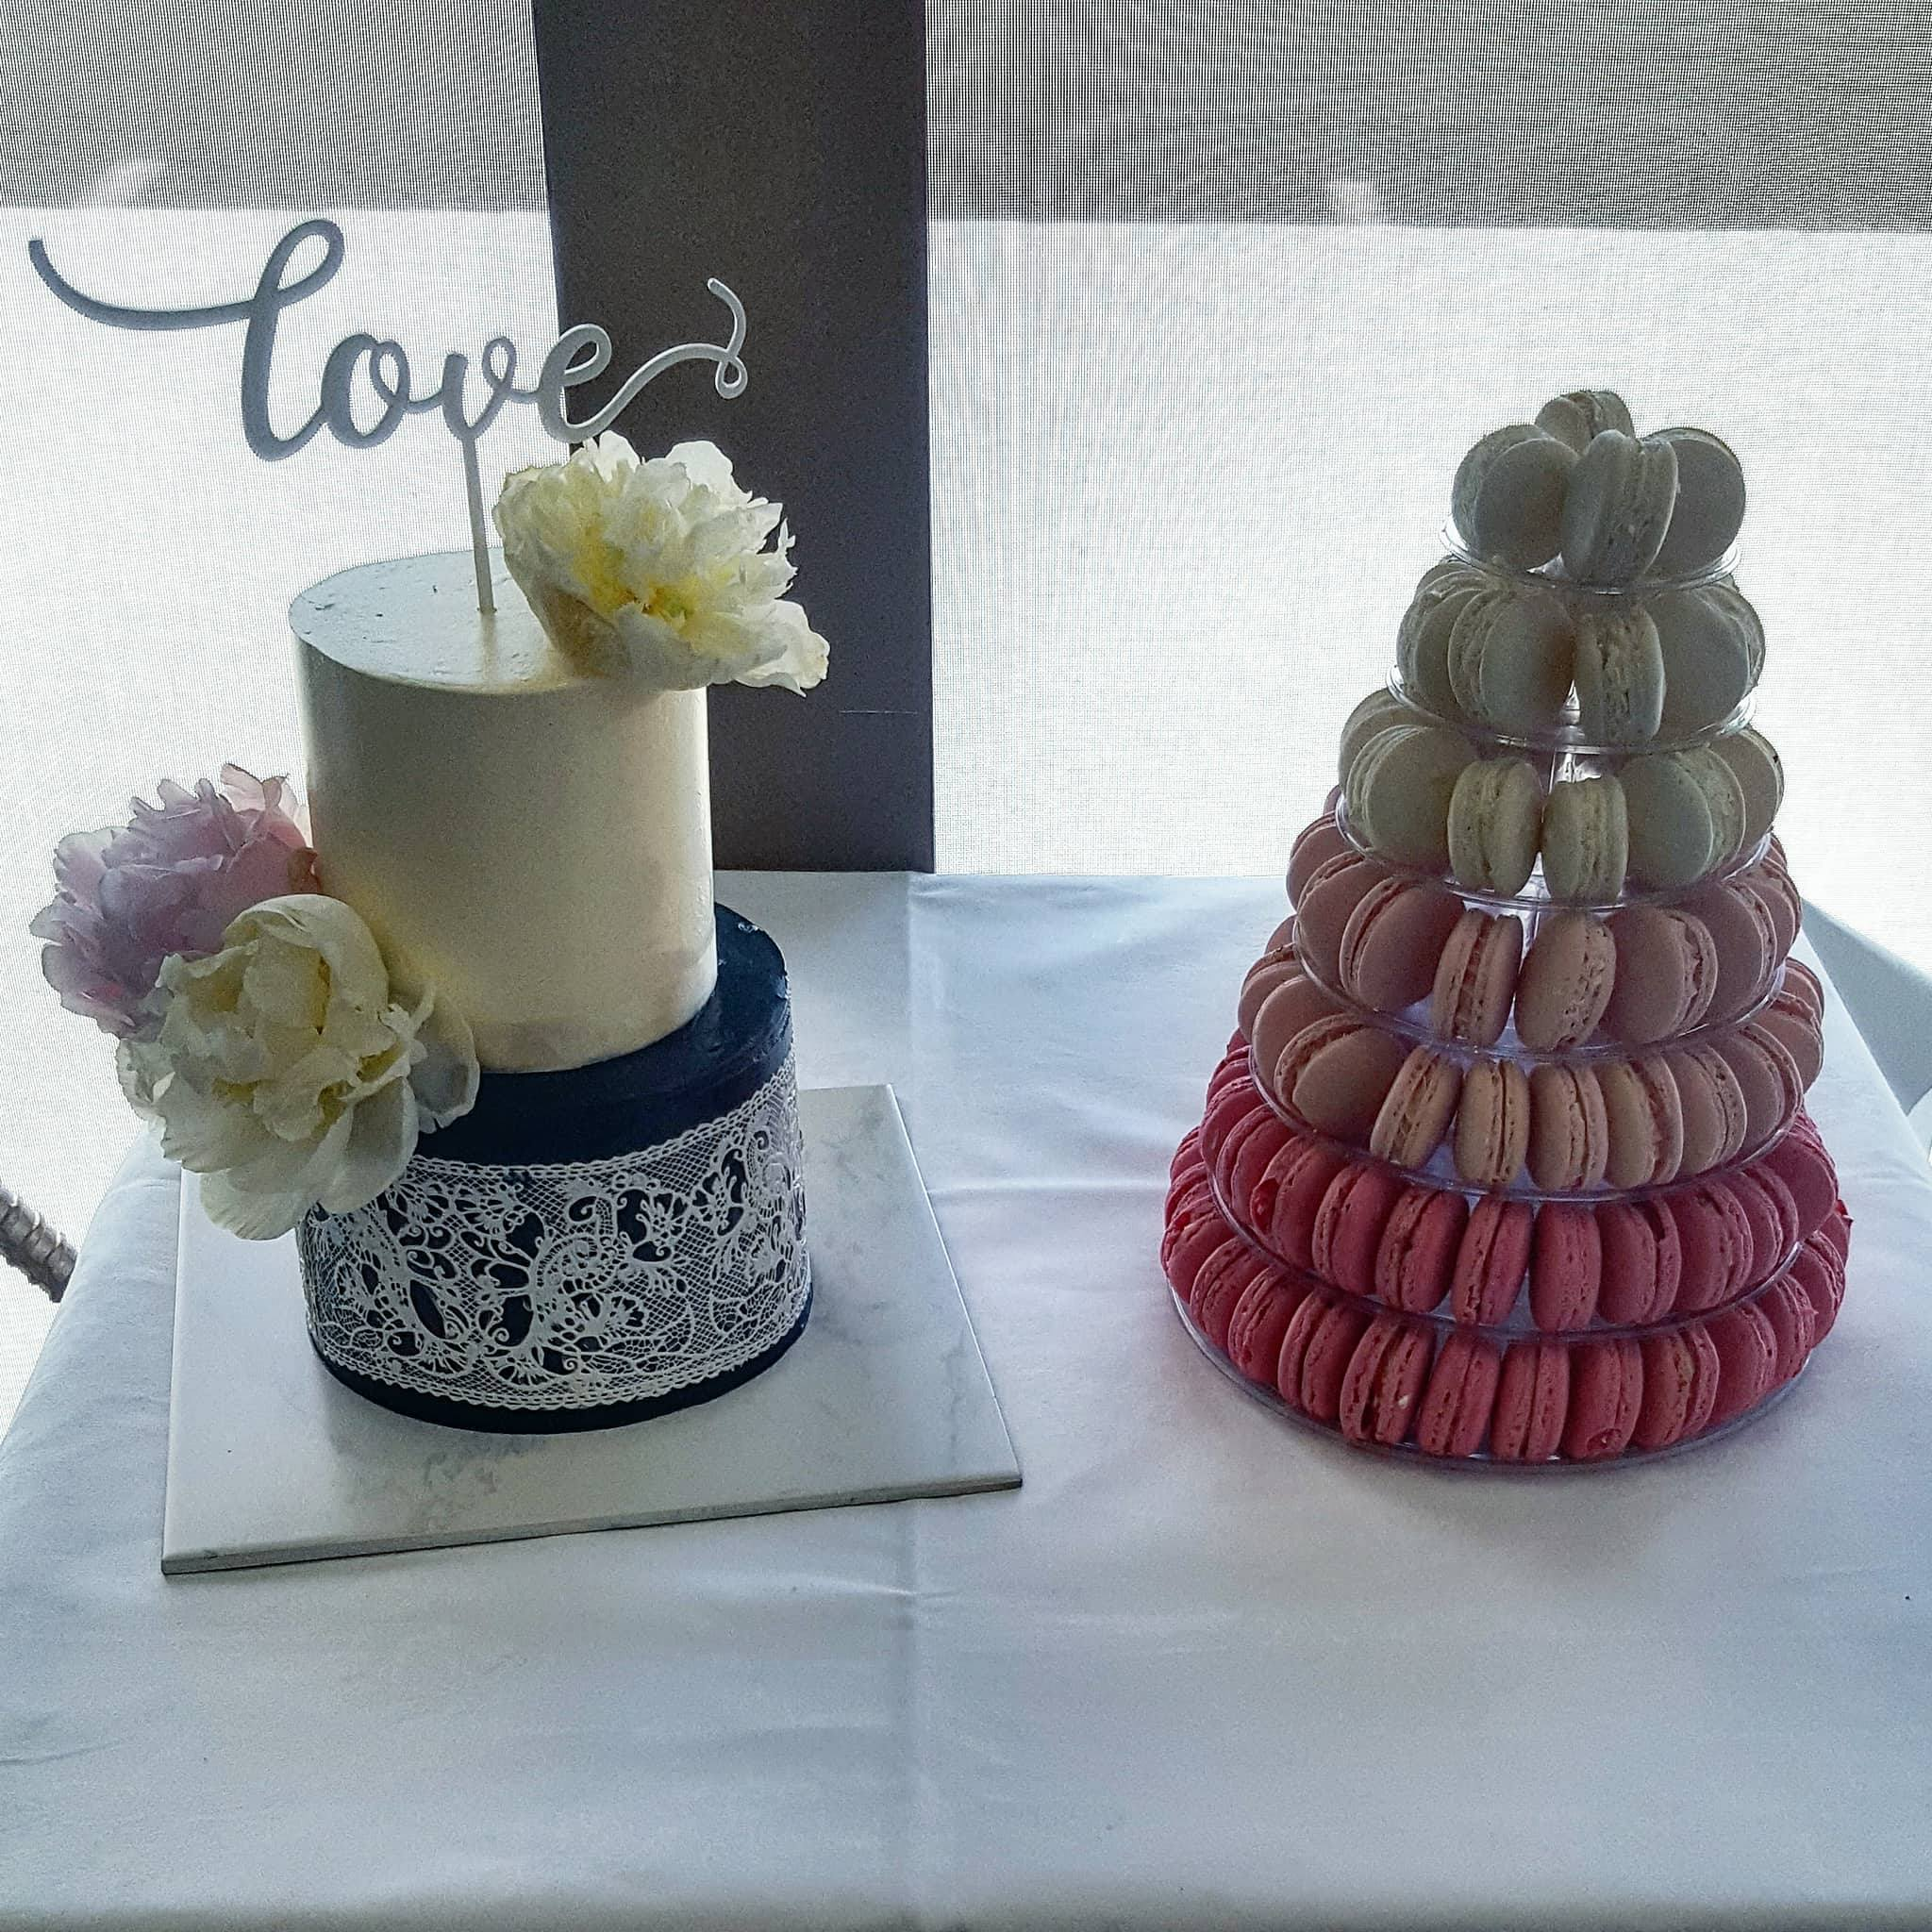 2 tier wedding cake with macaron tower